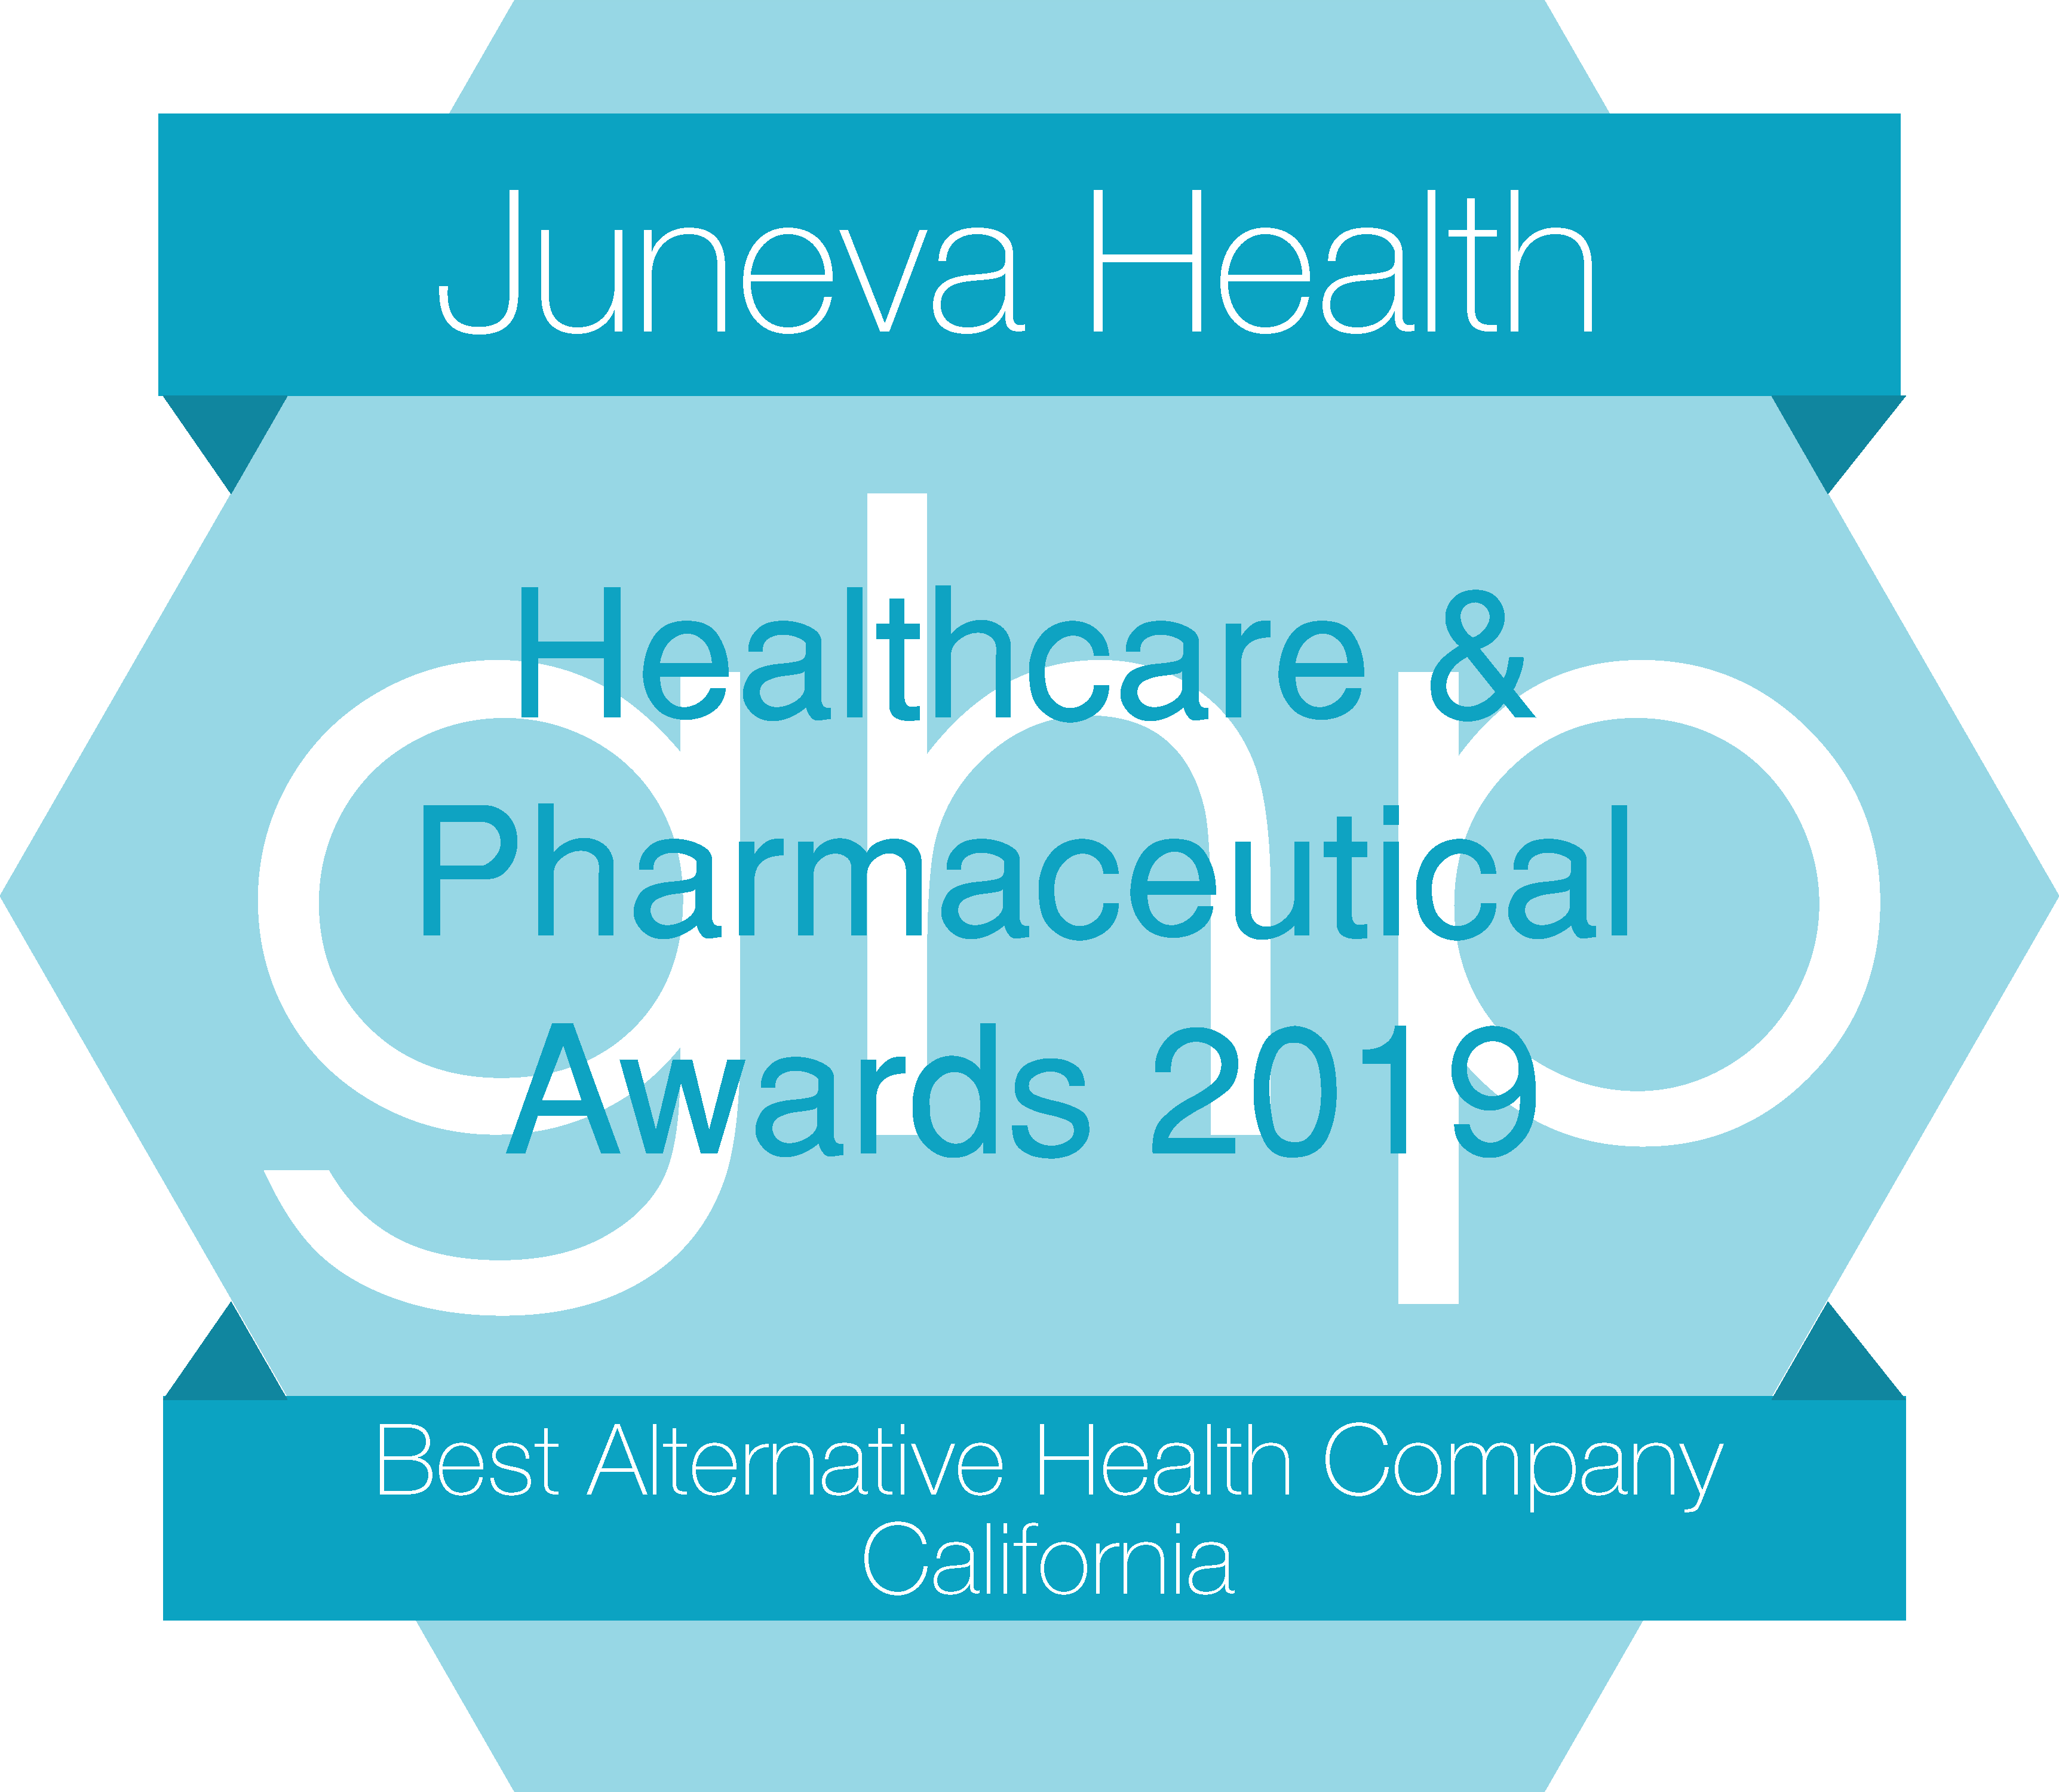 Juneva Health 2019 Best Alternative Health Company California